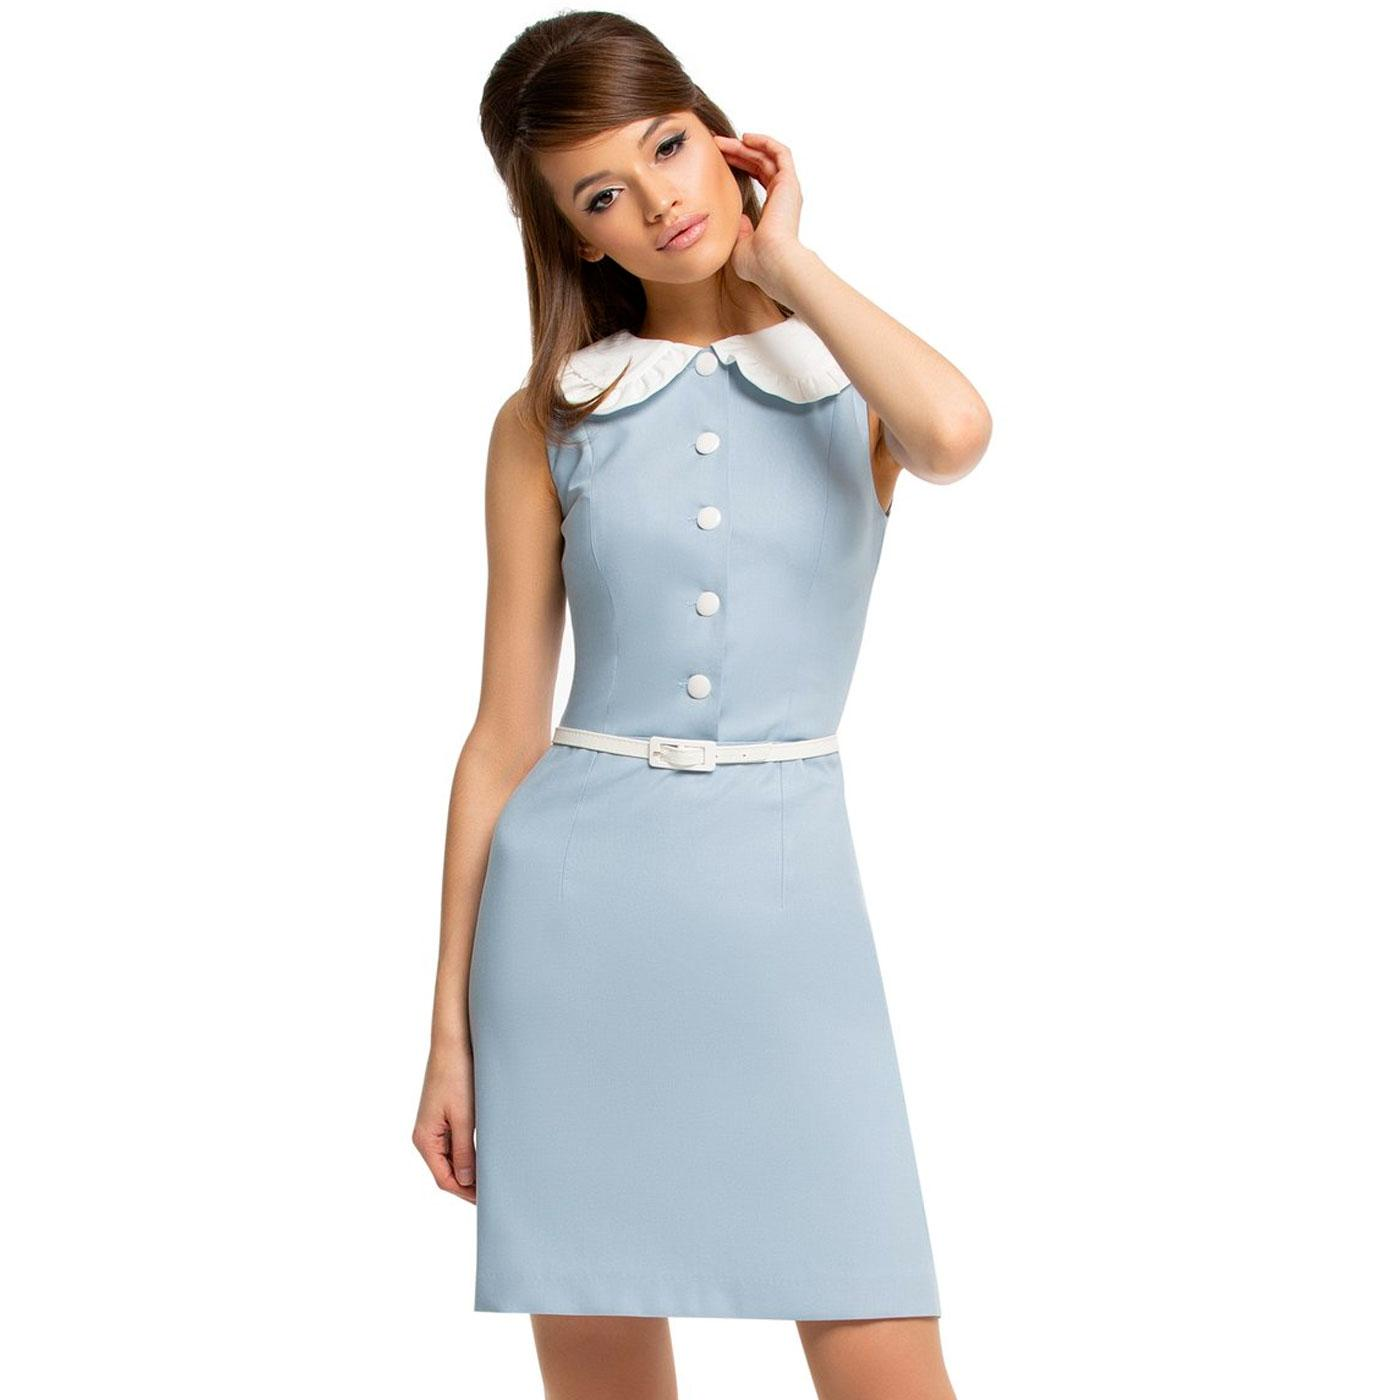 MARMALADE Ruffle Peter Pan Collar Mod Dress (DB)